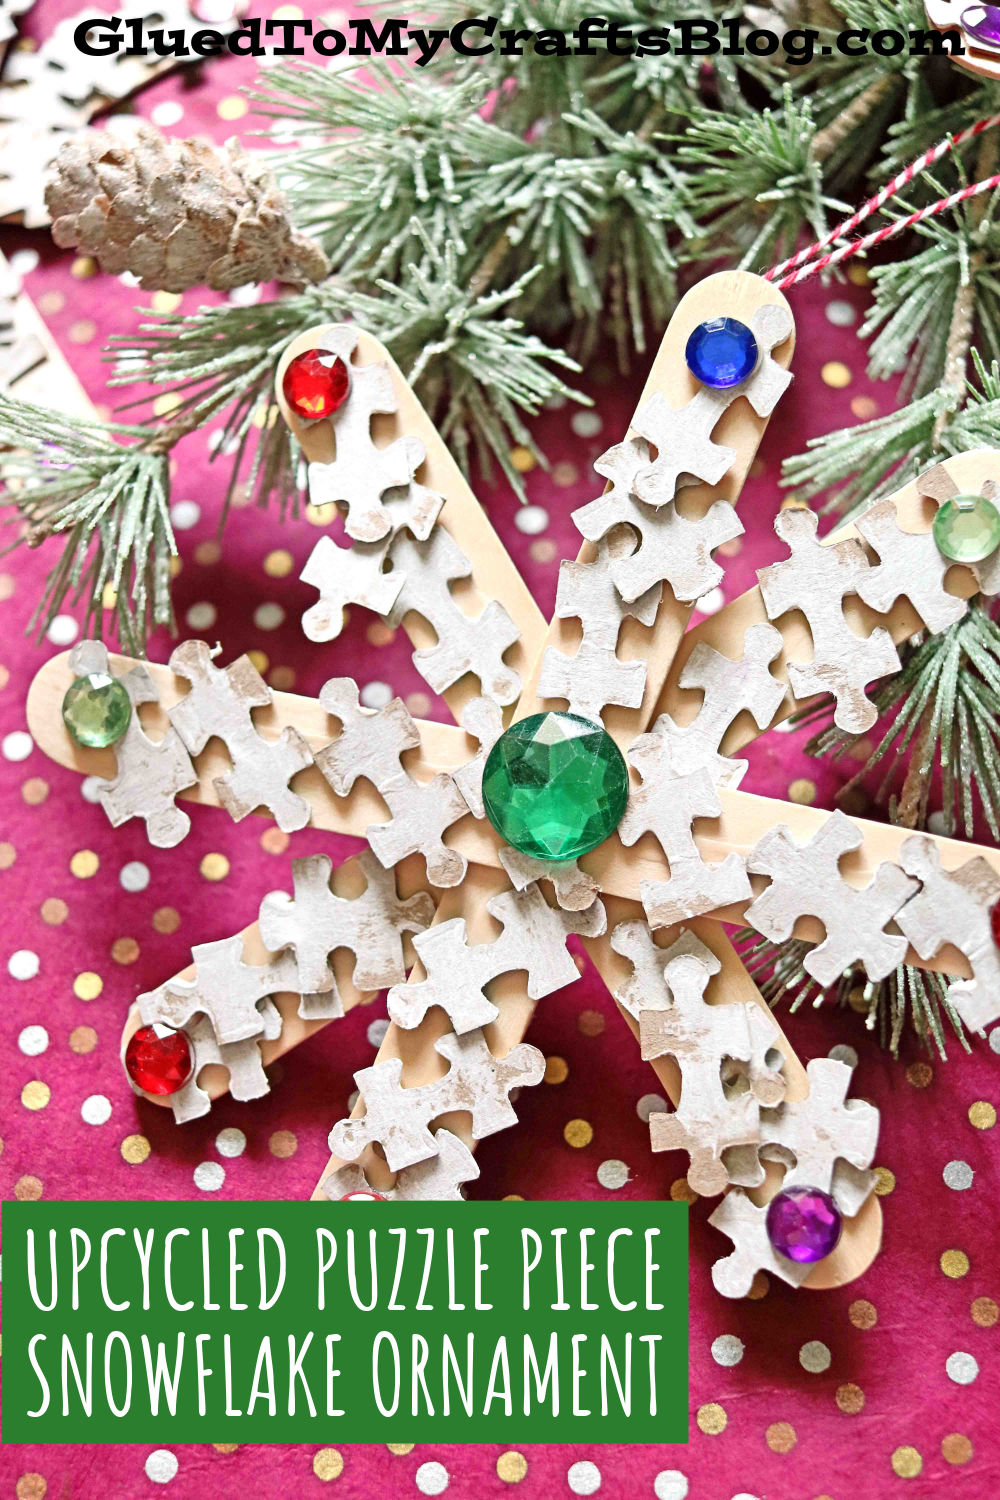 Puzzle Piece Snowflake Ornaments For Christmas - Kid Craft